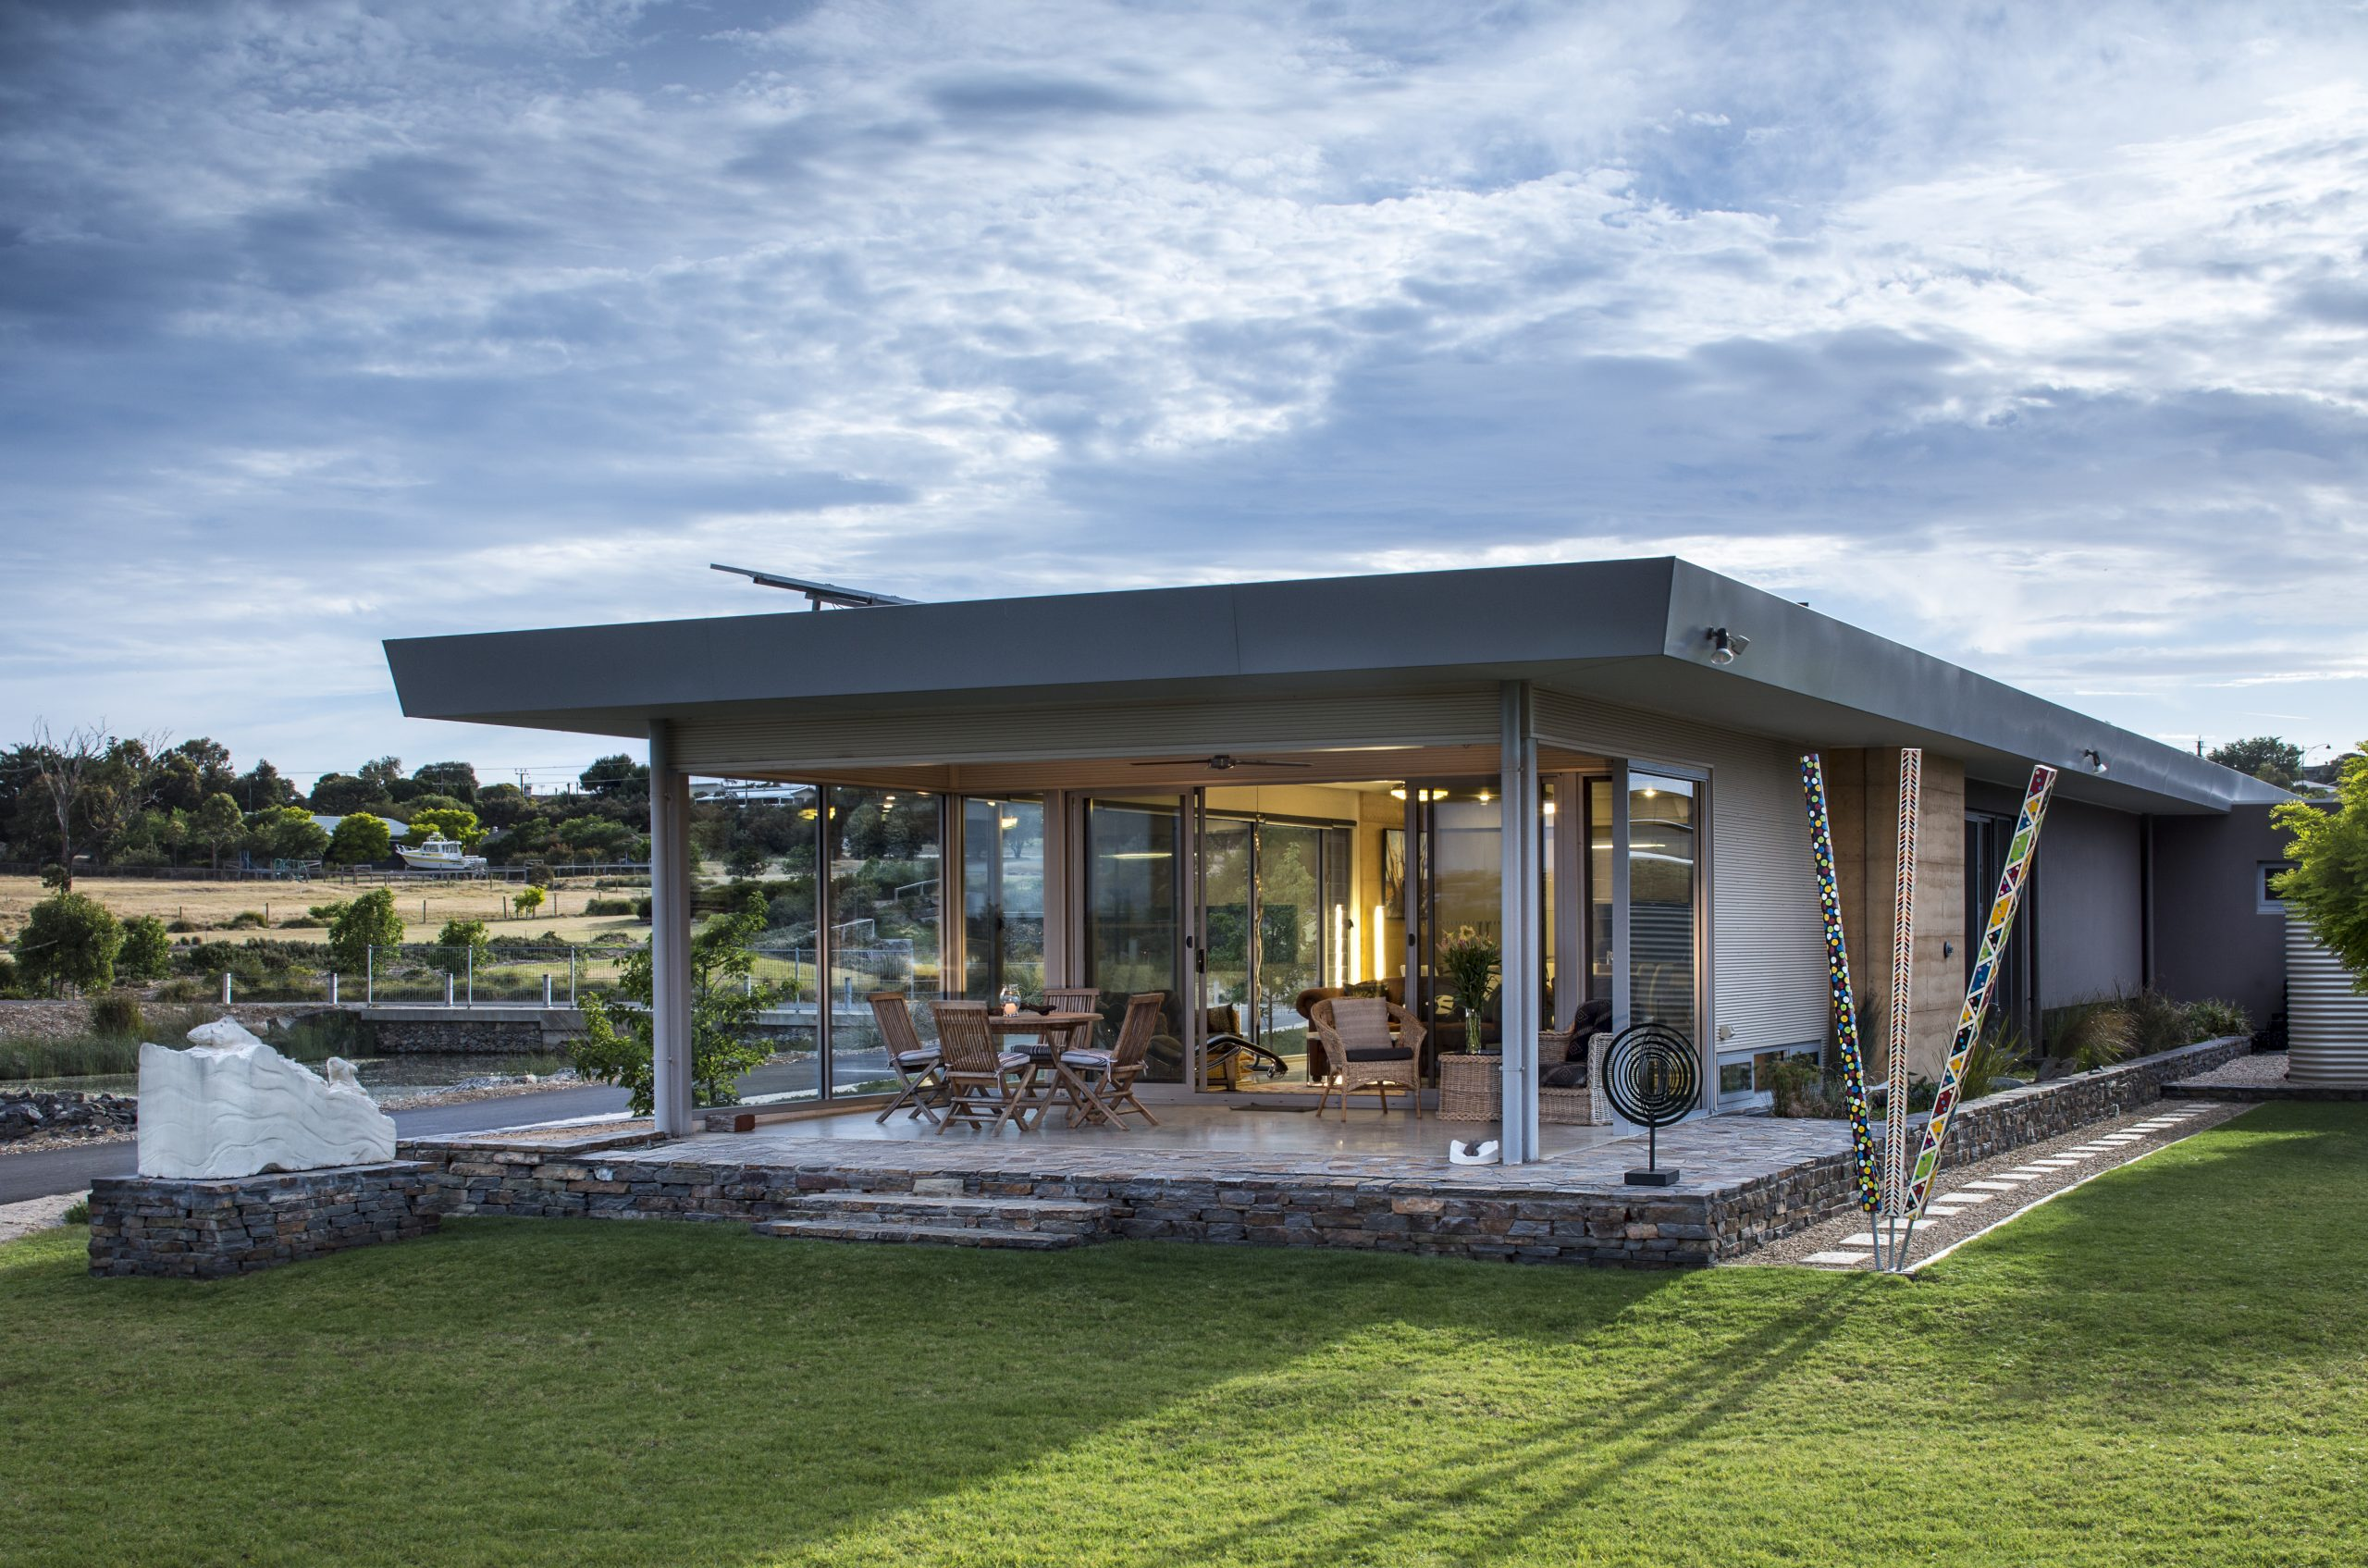 Custom Home, New Home, Family Home, Builders, Design, Beyond, Chiton, Fleurieu, Energy Efficient, Single Storey, Front View